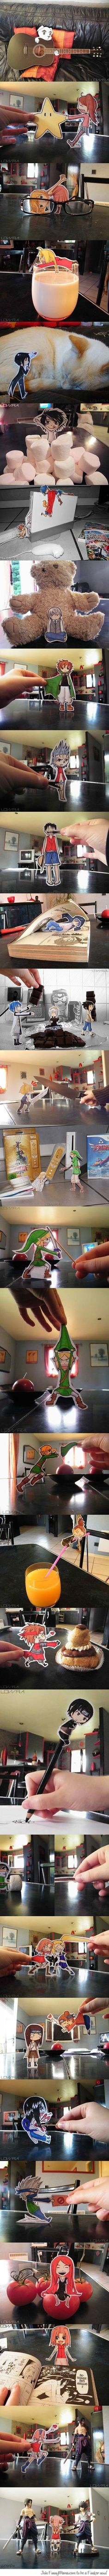 Epic Paper Arts! // funny pictures - funny photos - funny images - funny pics - funny quotes - #lol #humor #funnypictures